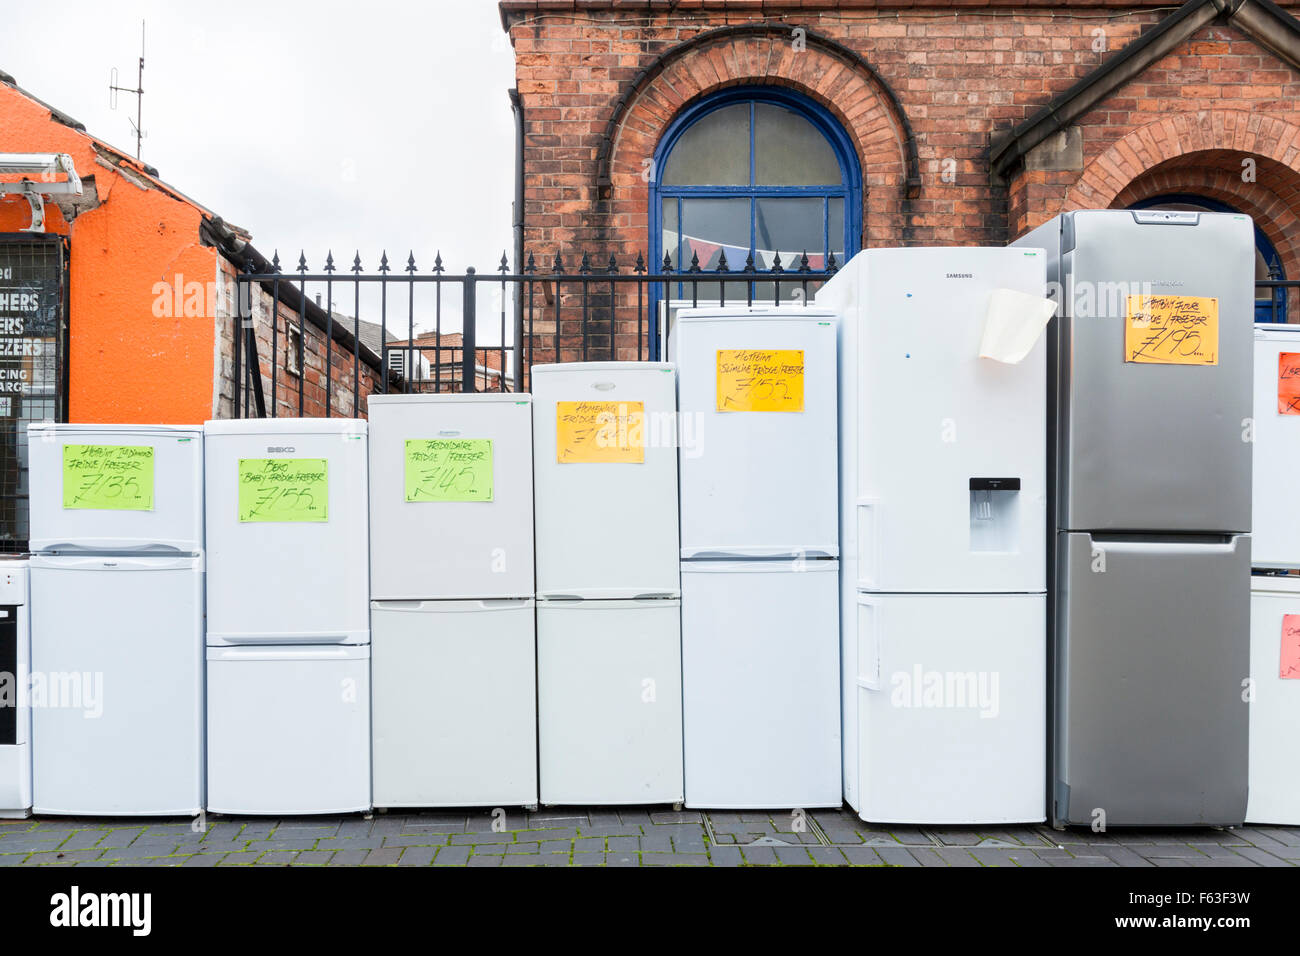 Shop Selling Second Hand Fridge Freezers And Other Used